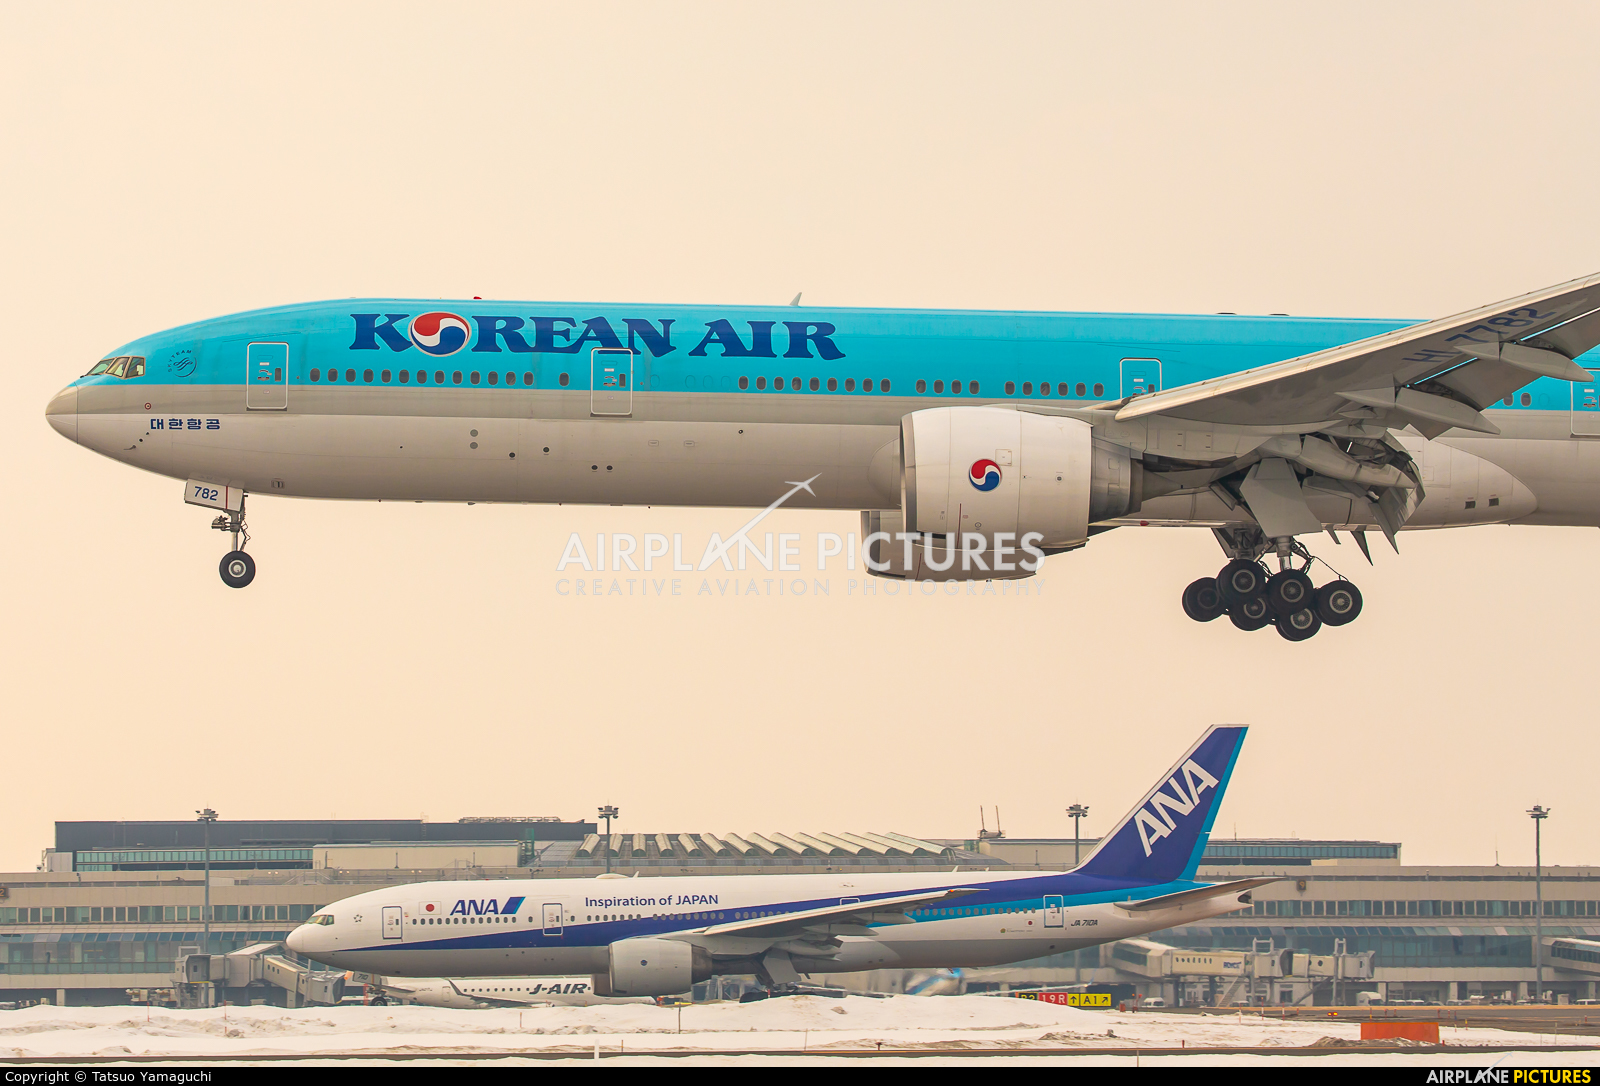 Korean Air HL7782 aircraft at New Chitose